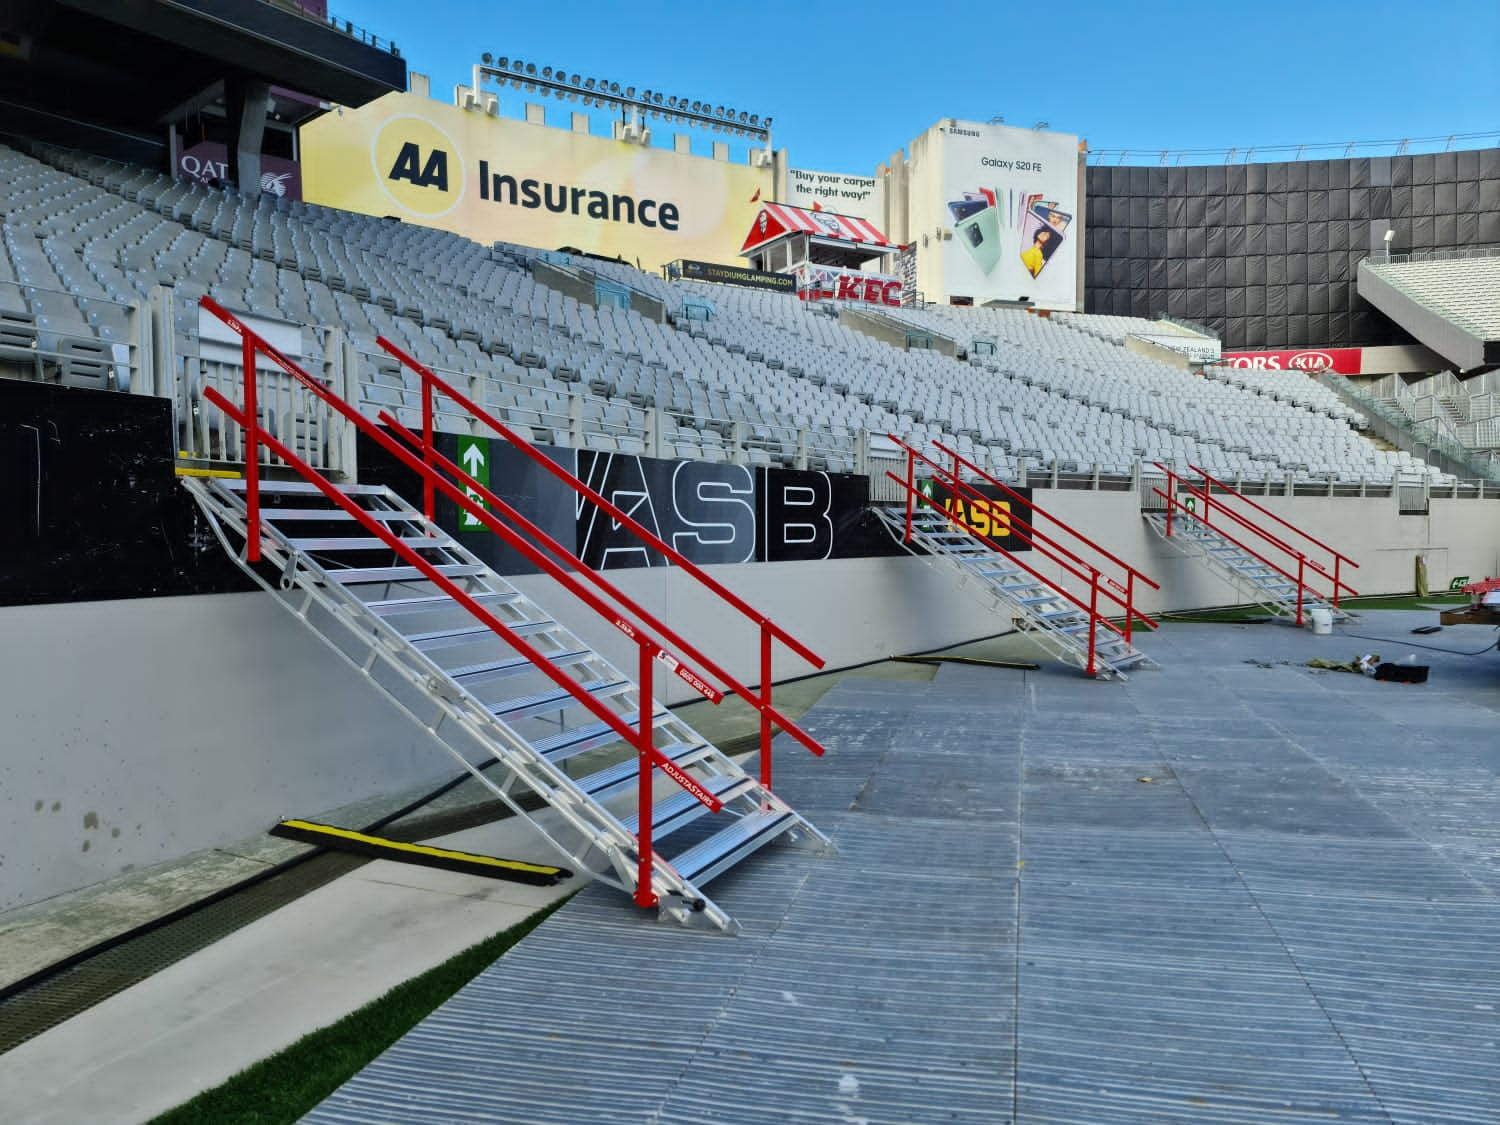 Access stairs for stadium grandstand